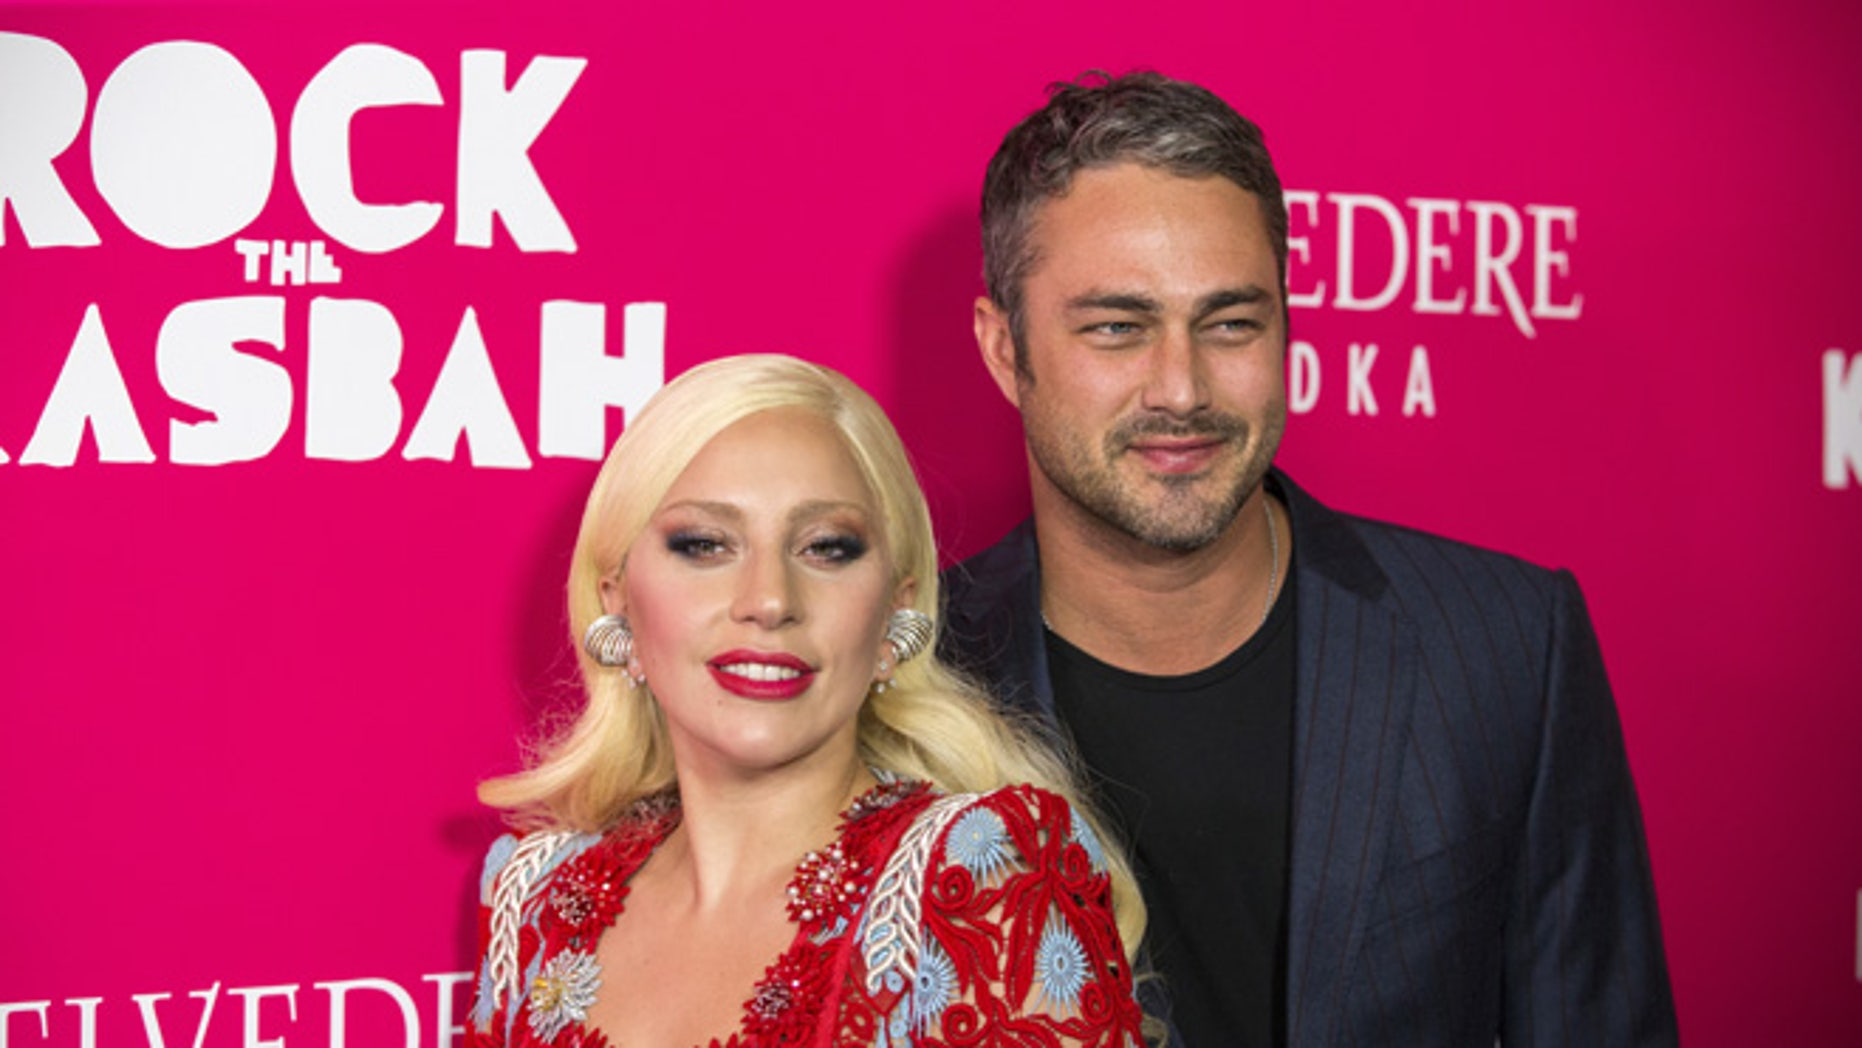 """October 19, 2015. Singer Lady Gaga arrives with Taylor Kinney for the premiere of the film """"Rock the Kasbah"""" in New York."""